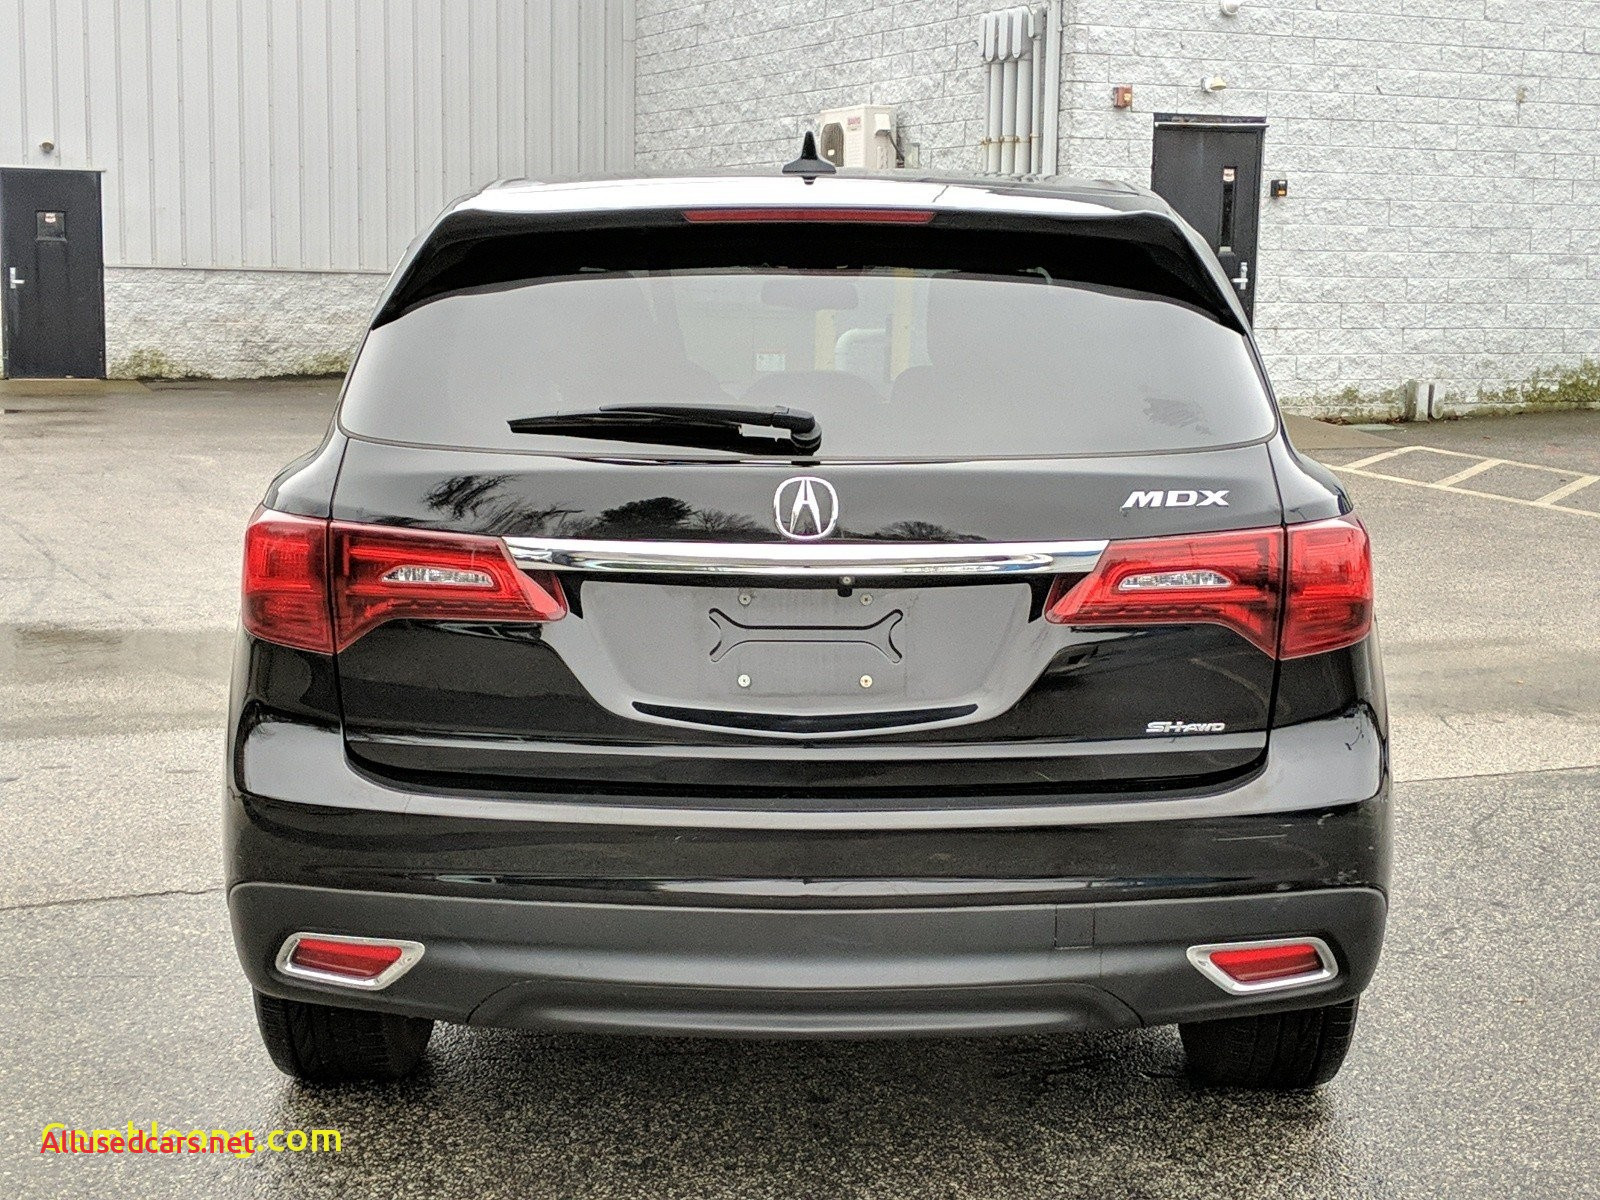 Awesome Repossessed Cars for Sale Near Me New Awesome Used Cars for Sale Near Me Acura